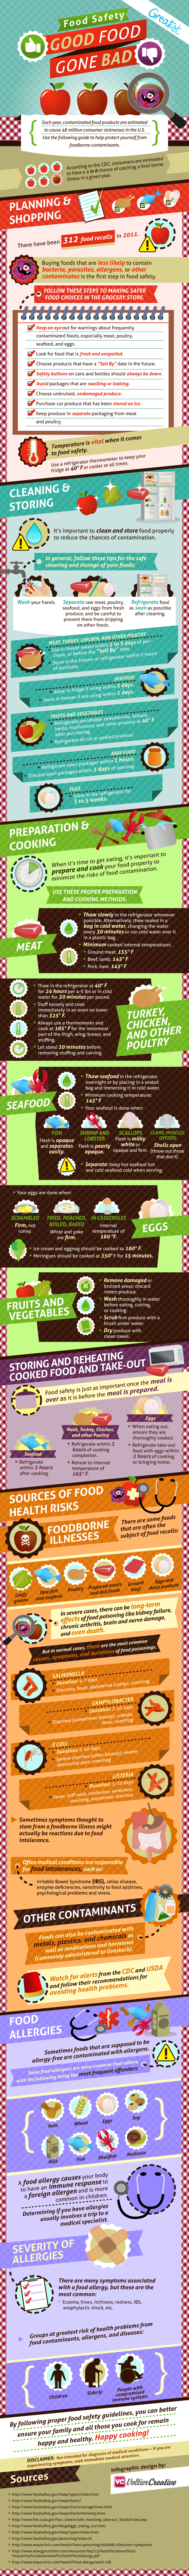 The Guide To Paleo Diet: What Is It And Why It's Good For You Infographic